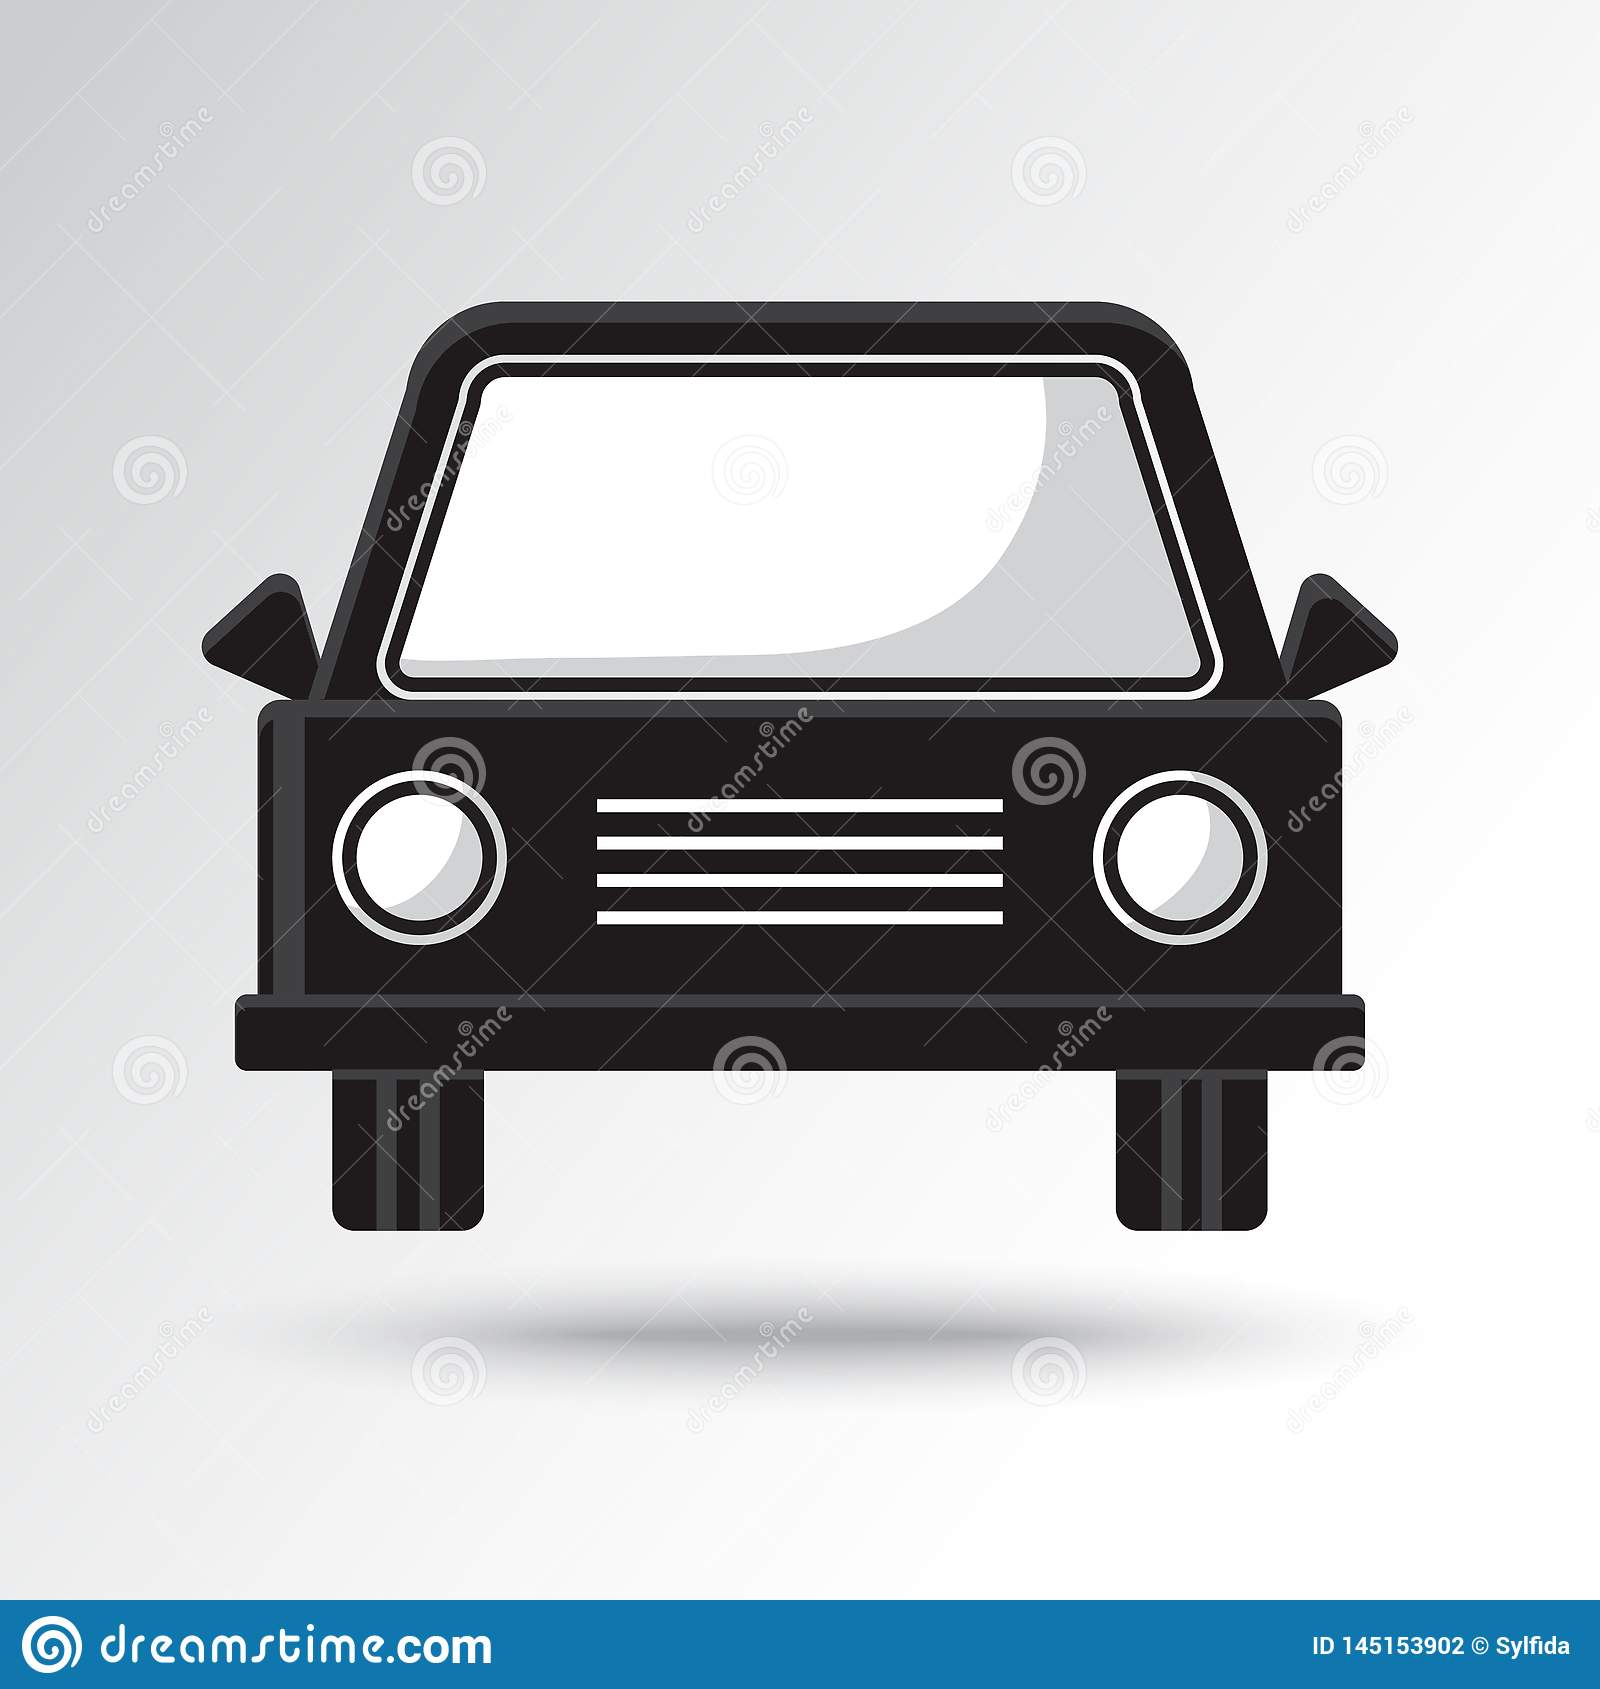 Black and white car icon. Vector illustration